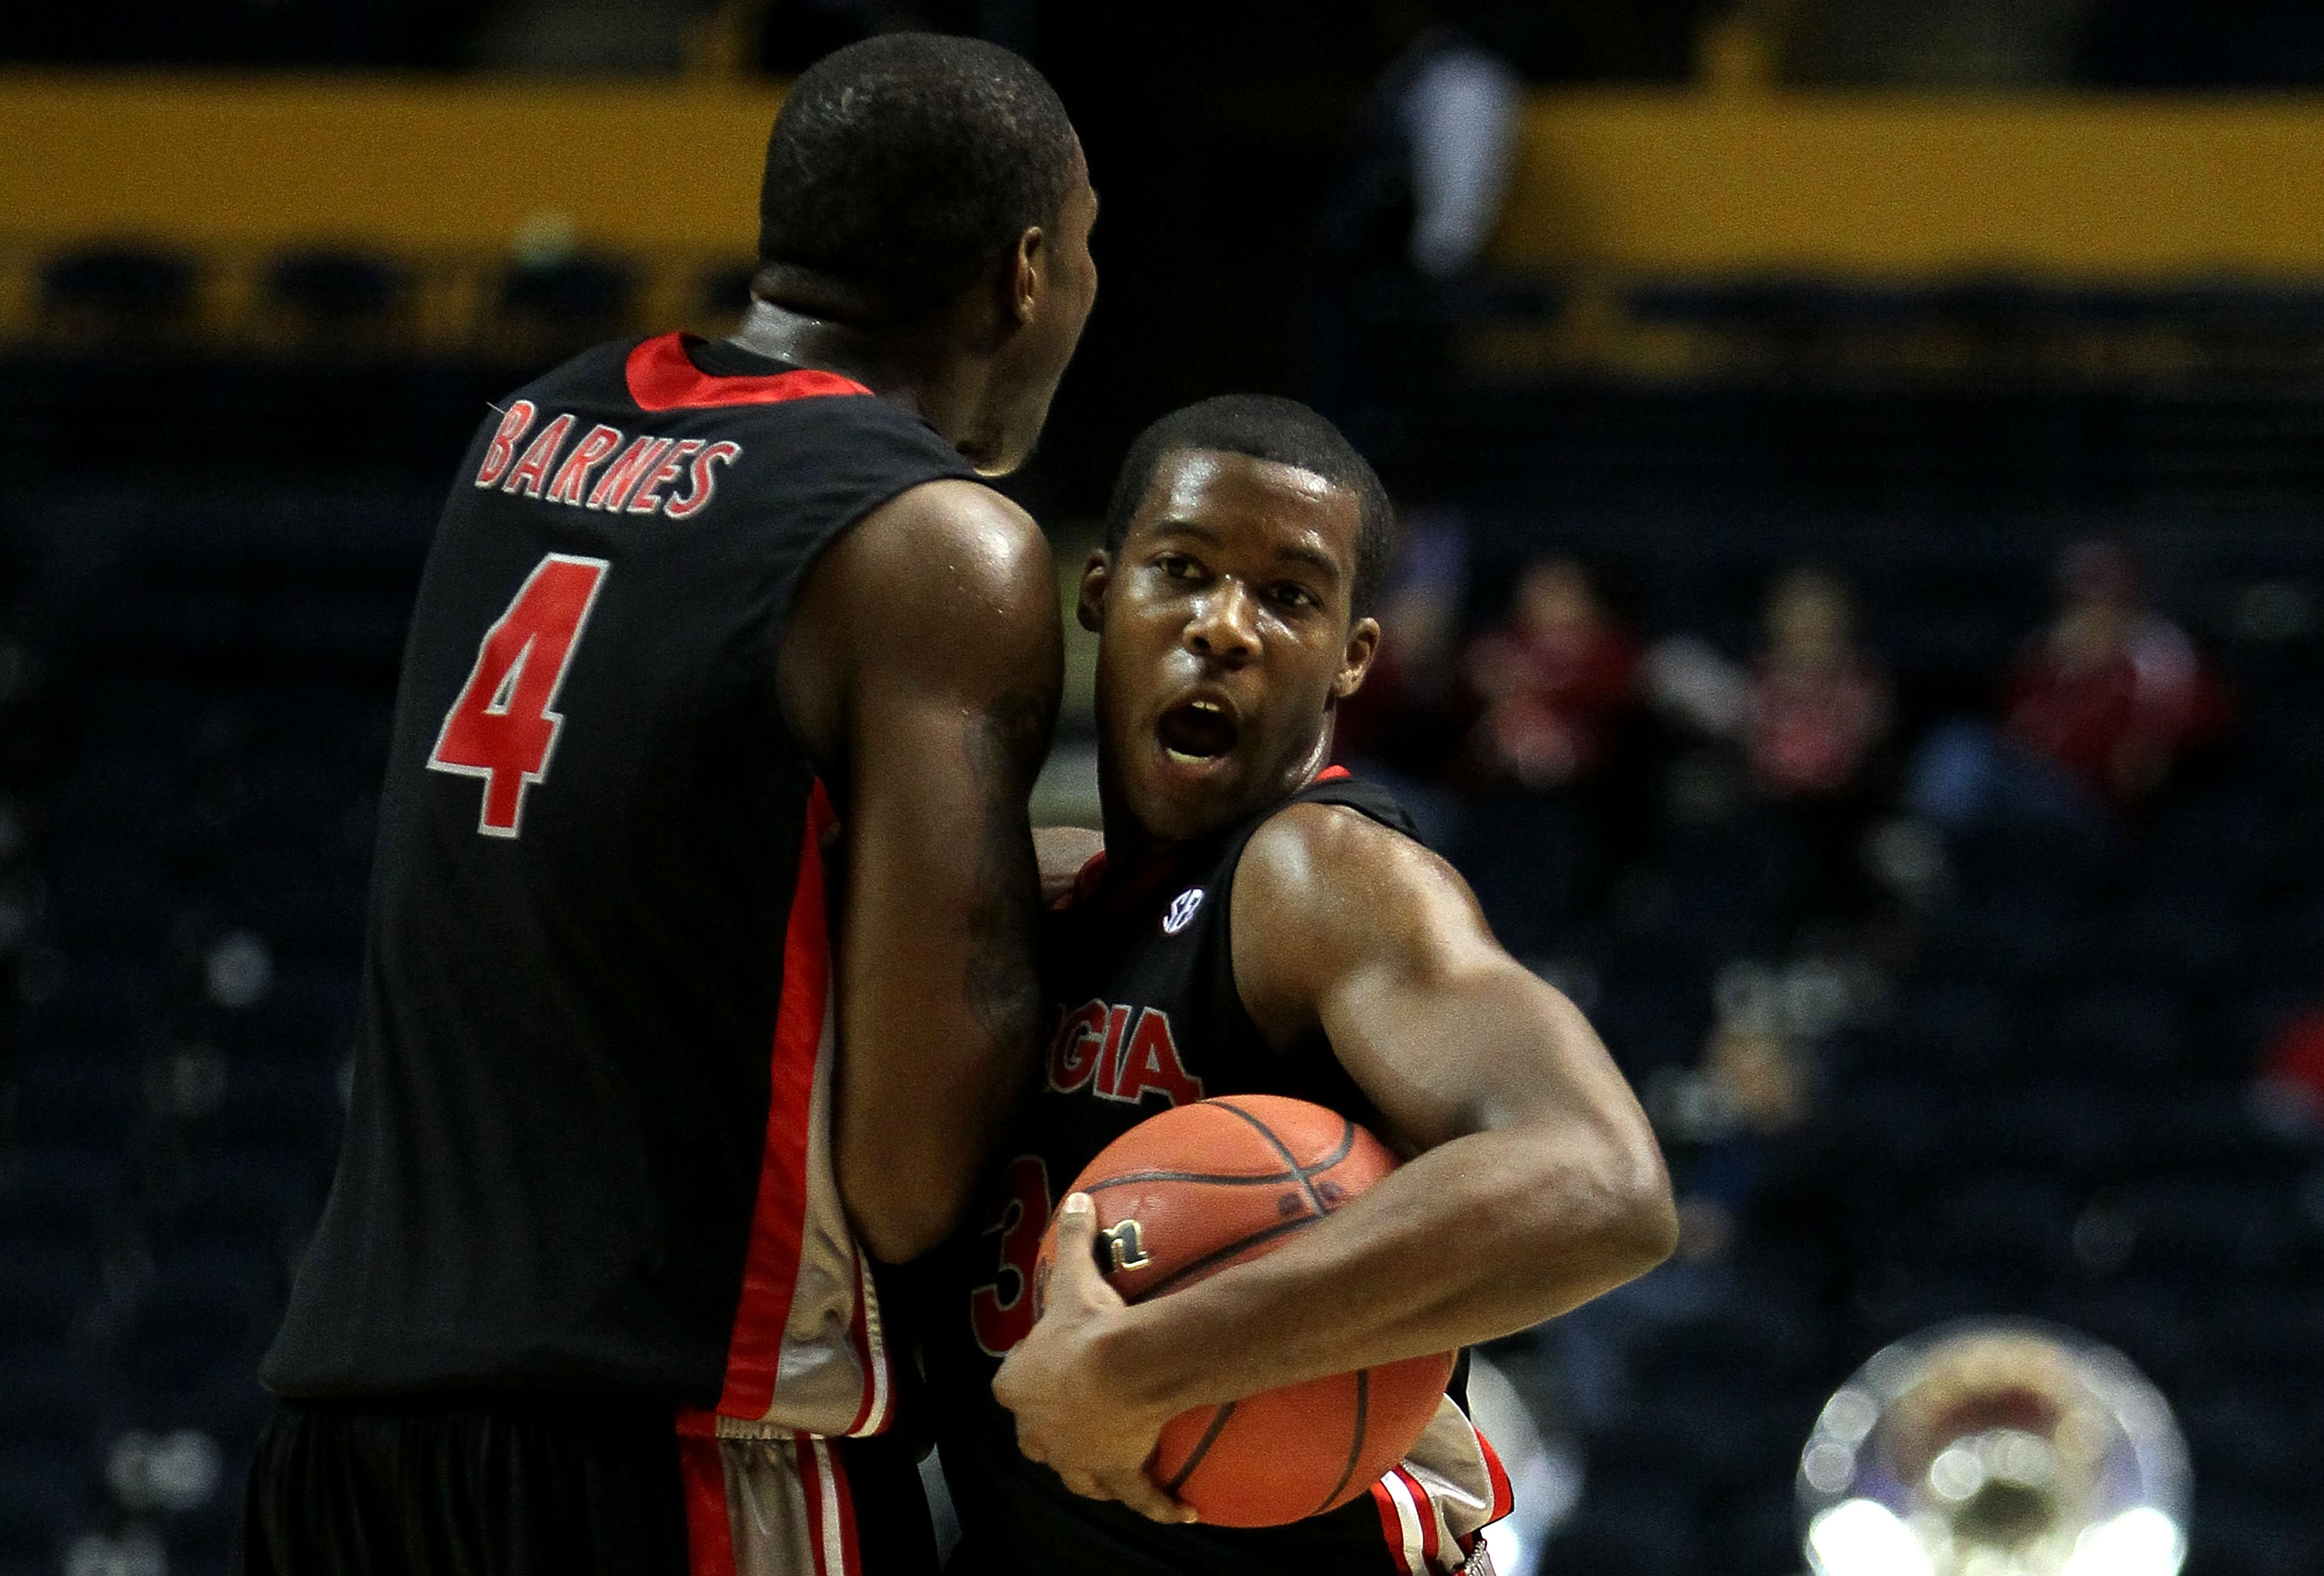 NASHVILLE, TN - MARCH 11:  Dustin Ware #3 and Chris Barnes #4 of the Georgia Bulldogs celebrate afte their 77-64 win against the Arkanasas Razorbacks during the first round of the SEC Men's Basketball Tournament at the Bridgestone Arena on March 11, 2010